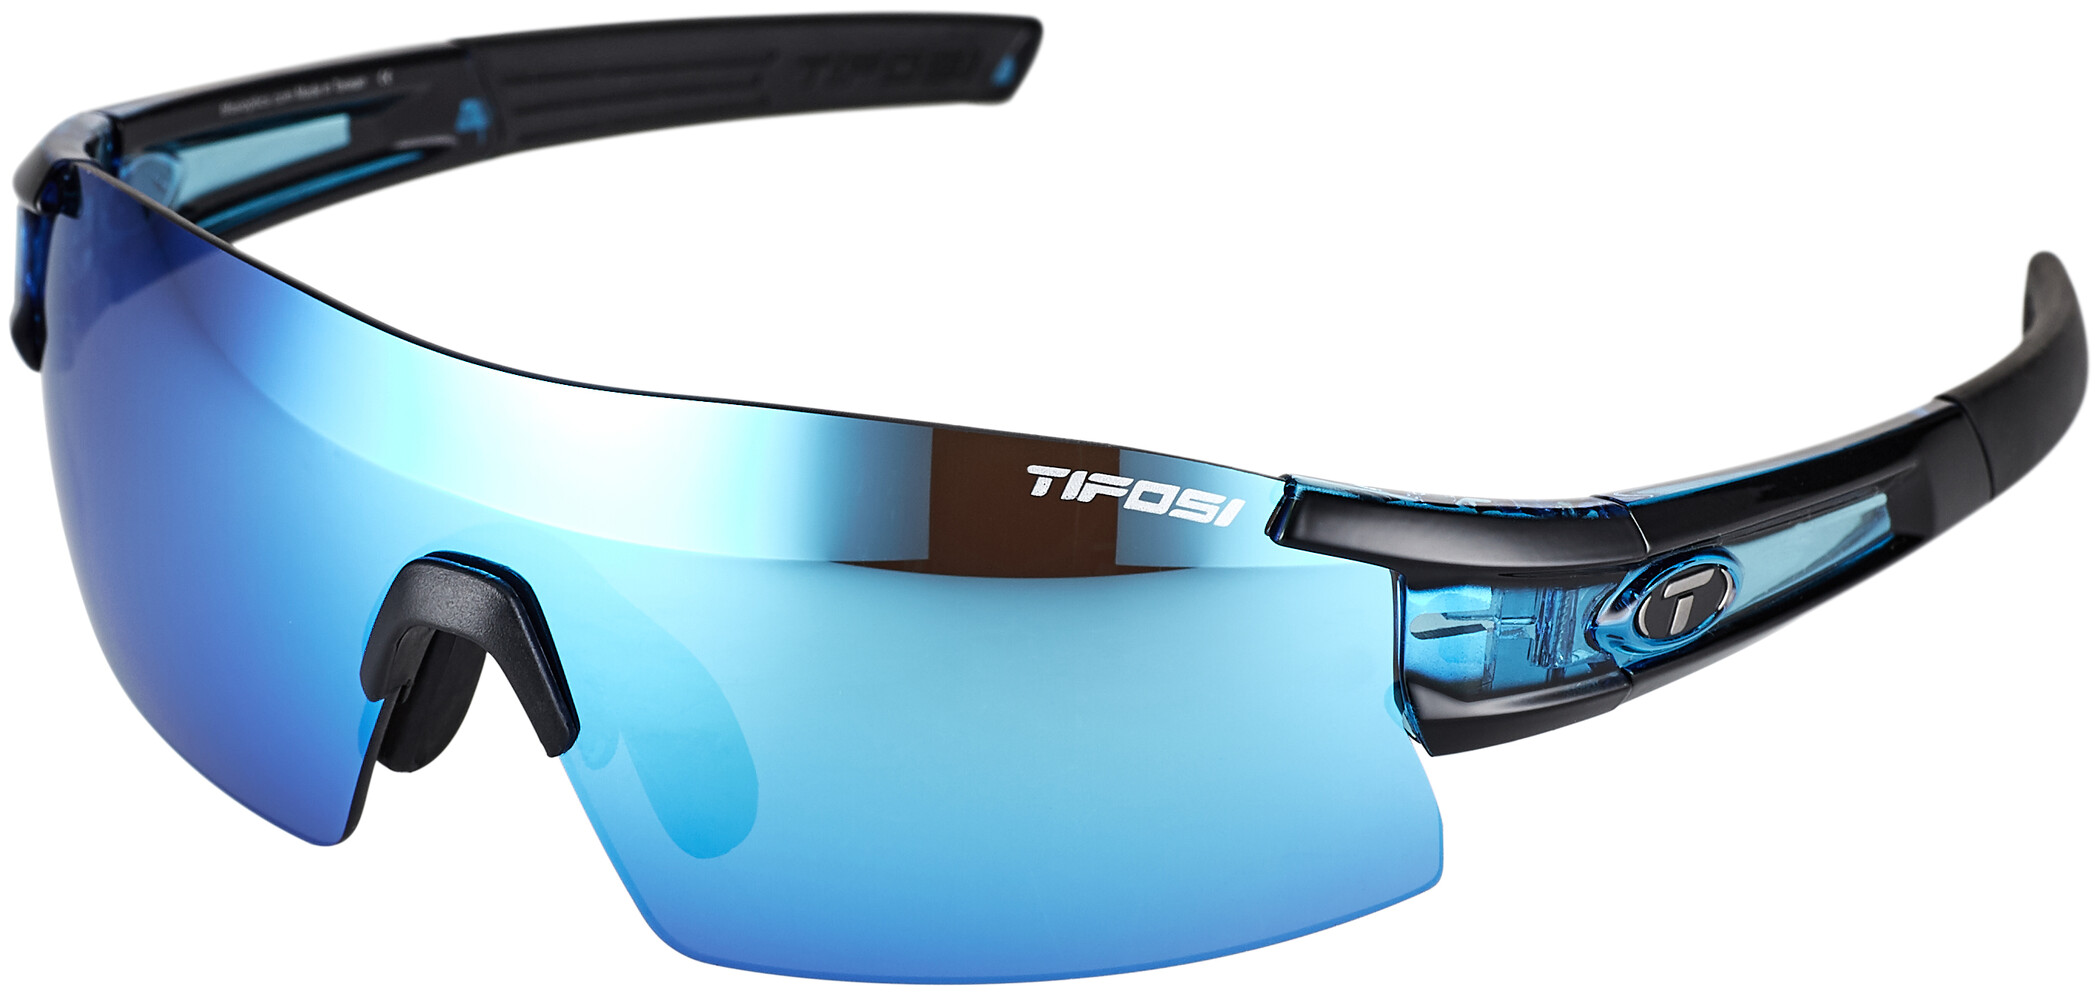 Tifosi Escalate SF Cykelbriller Herrer, crystal blue - clarion blue/ac red/clear | Glasses